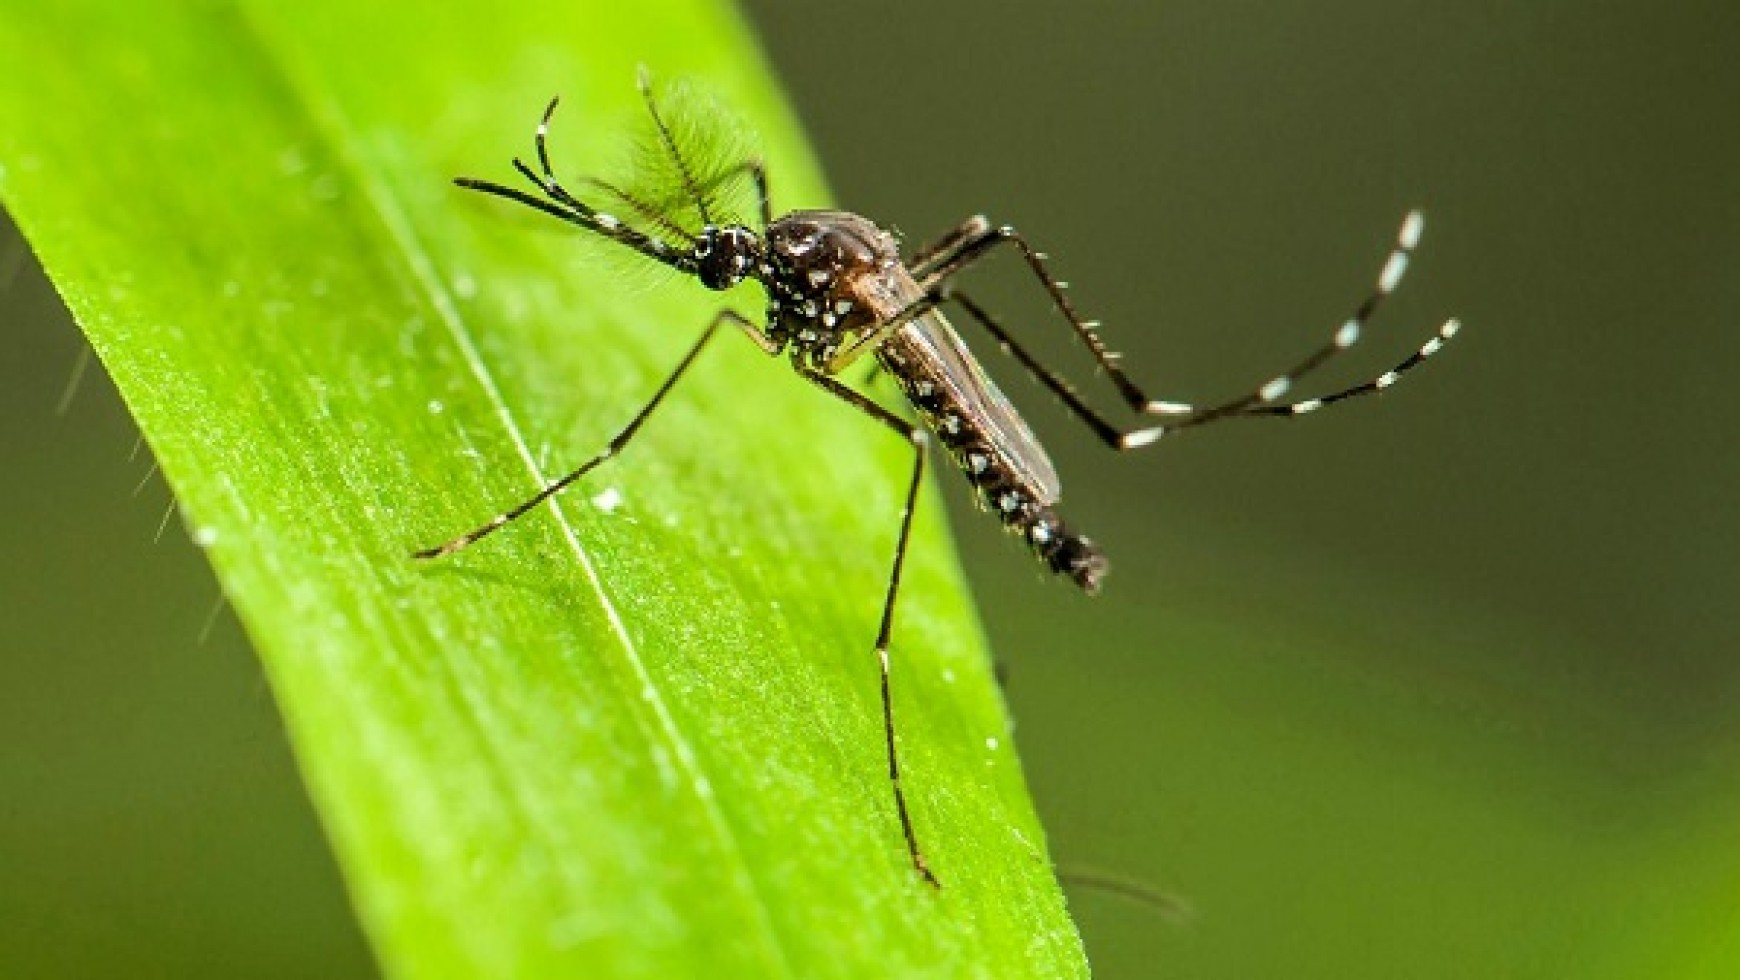 Mosquito Control Minneapolis – How To Get Rid Of Them